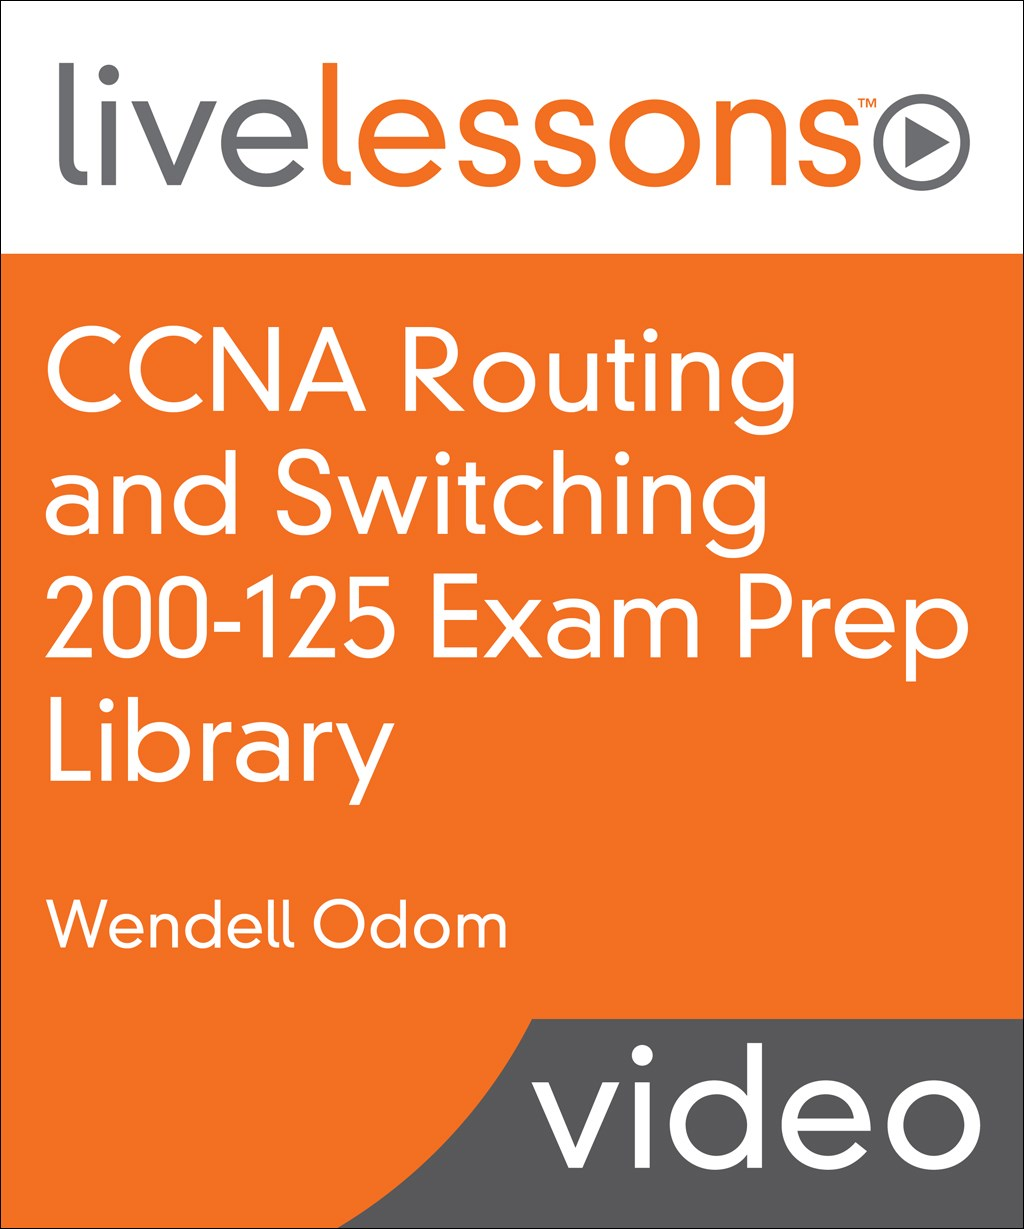 CCNA Routing and Switching 200-125 Exam Prep LiveLessons Library